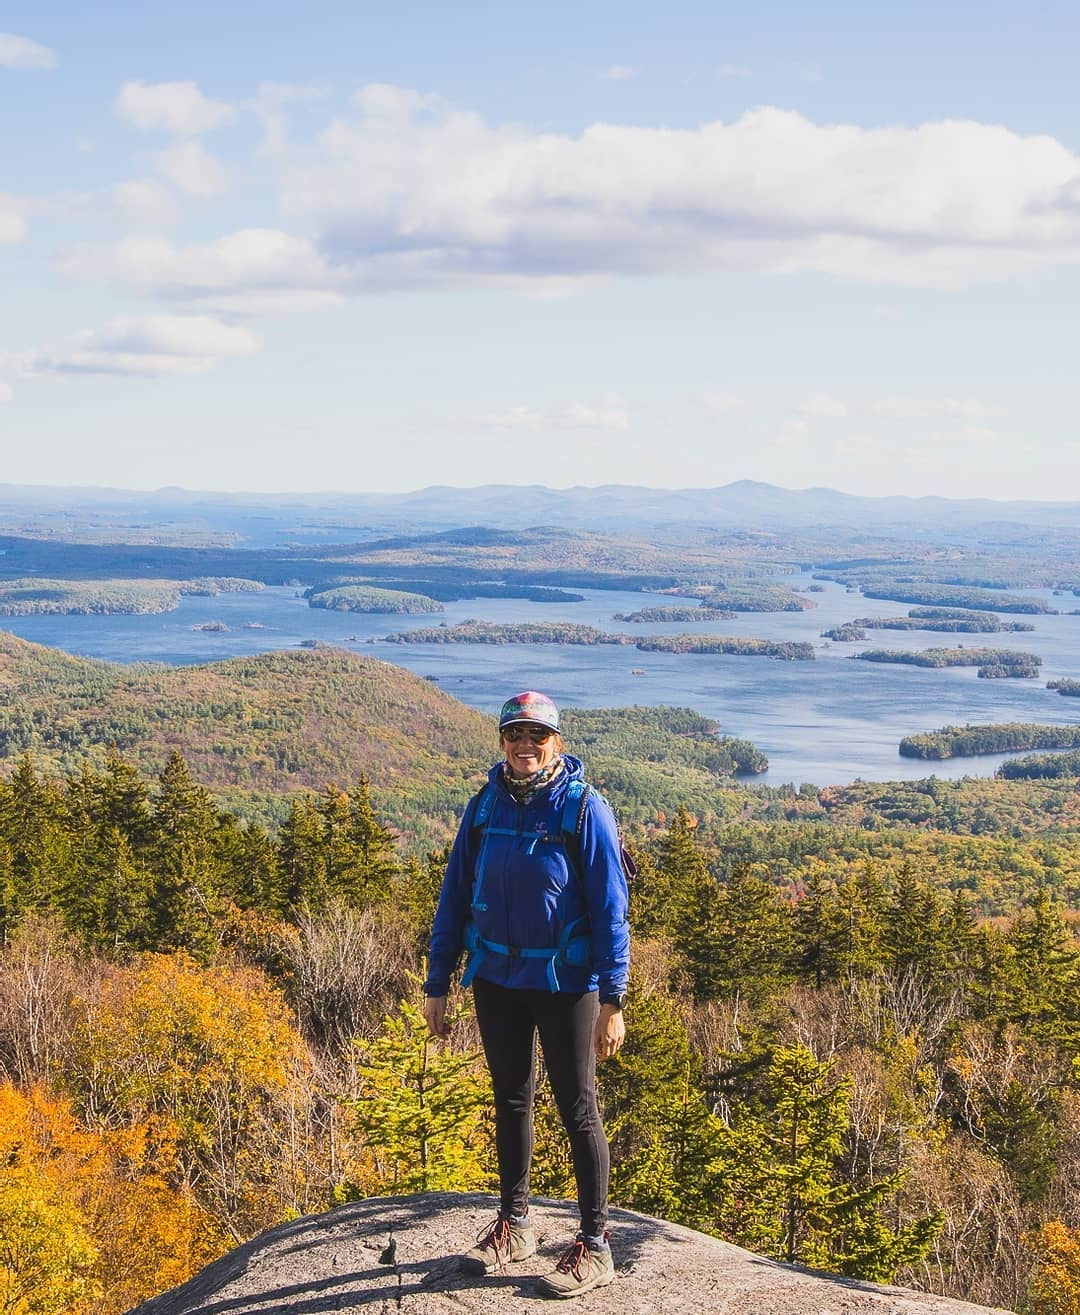 Kristin Bor founder of Bearfoot Theory blog hiking in the mountains of New Hampshire in the fall.